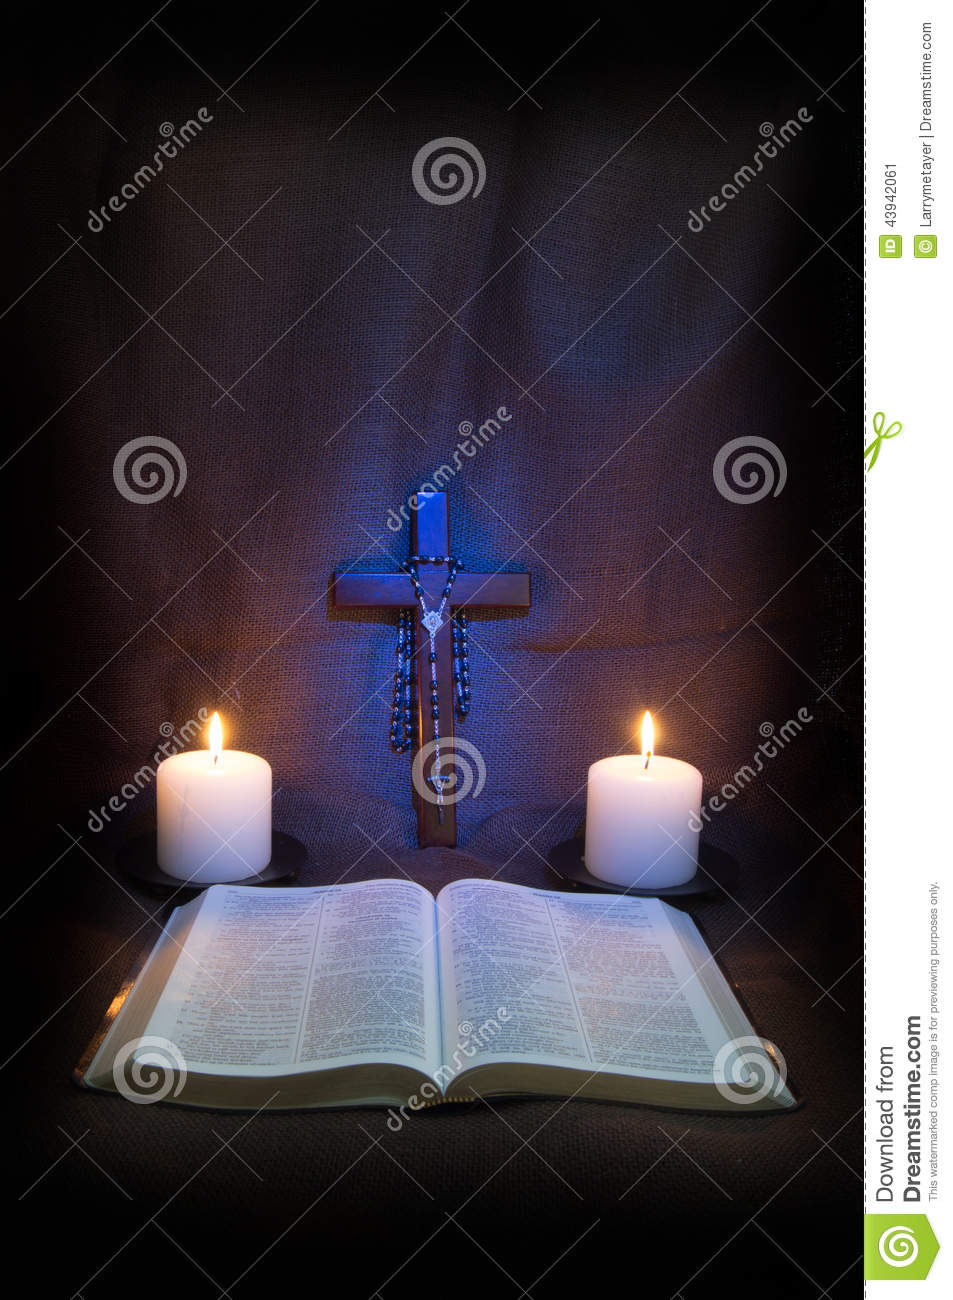 Bible, Rosary, Crucifix and Two Candles